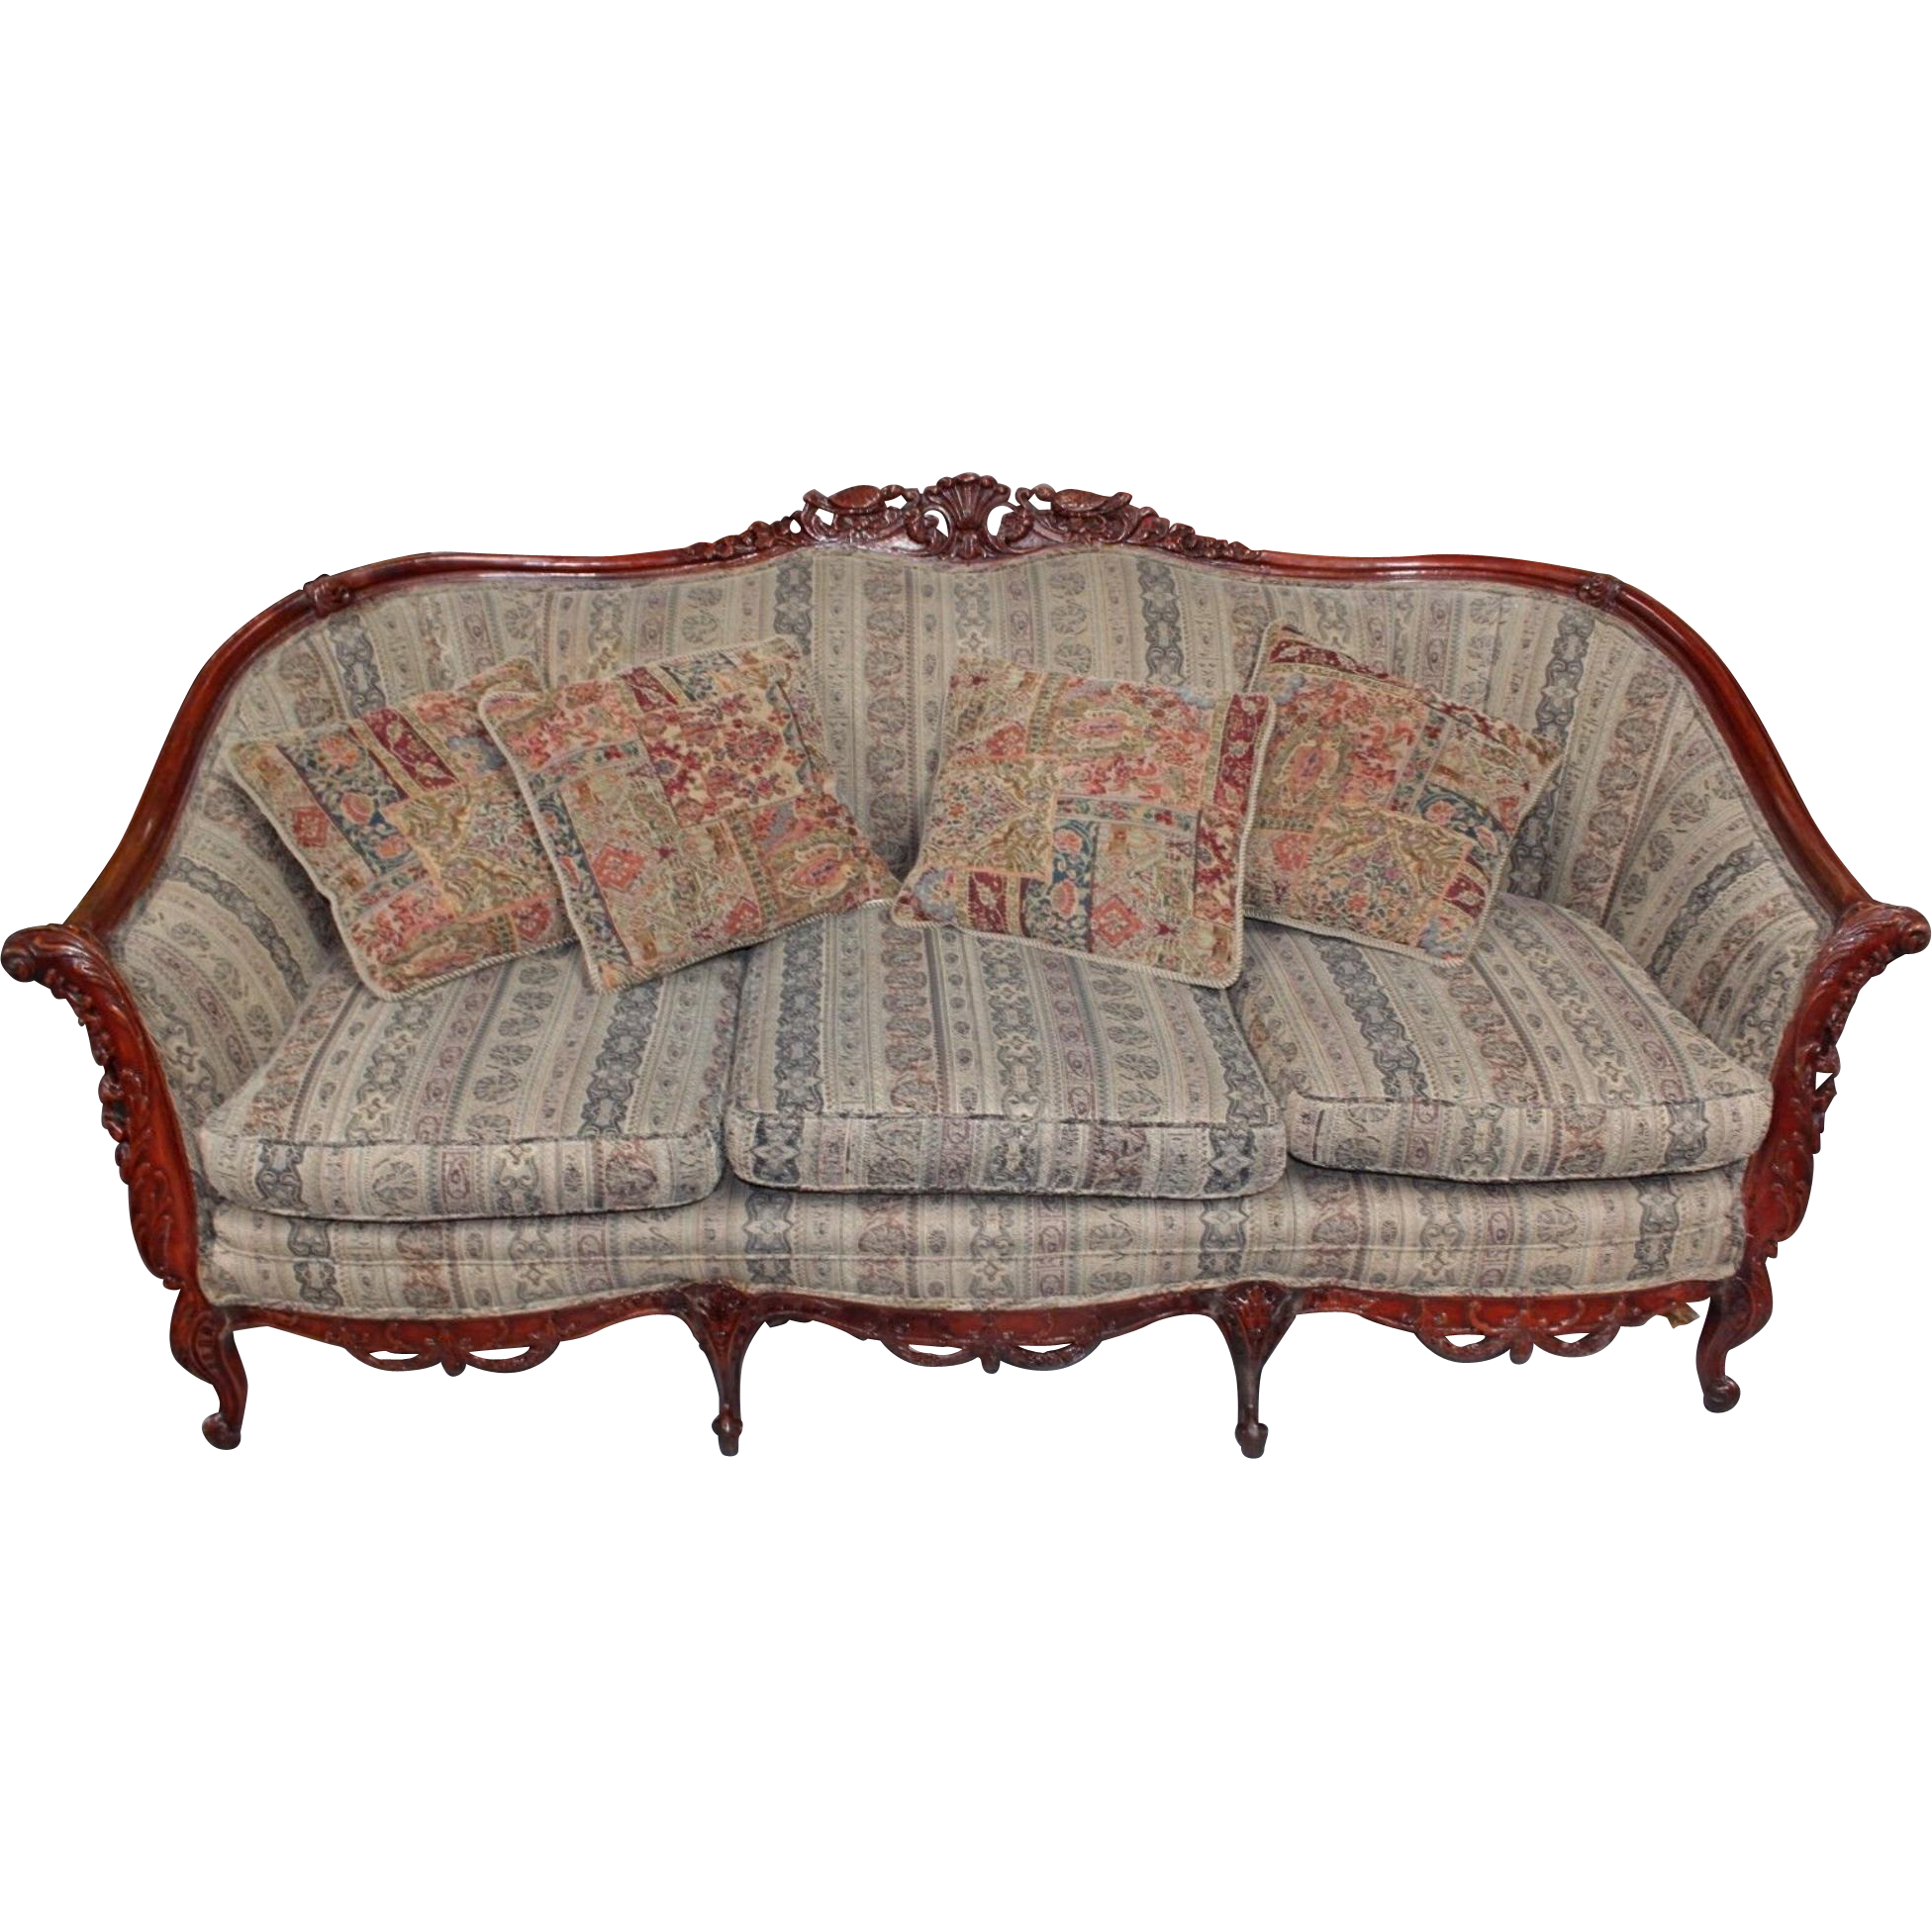 Antique Naturalistic Rococo Revival Style Rosewood Sofa With Four From